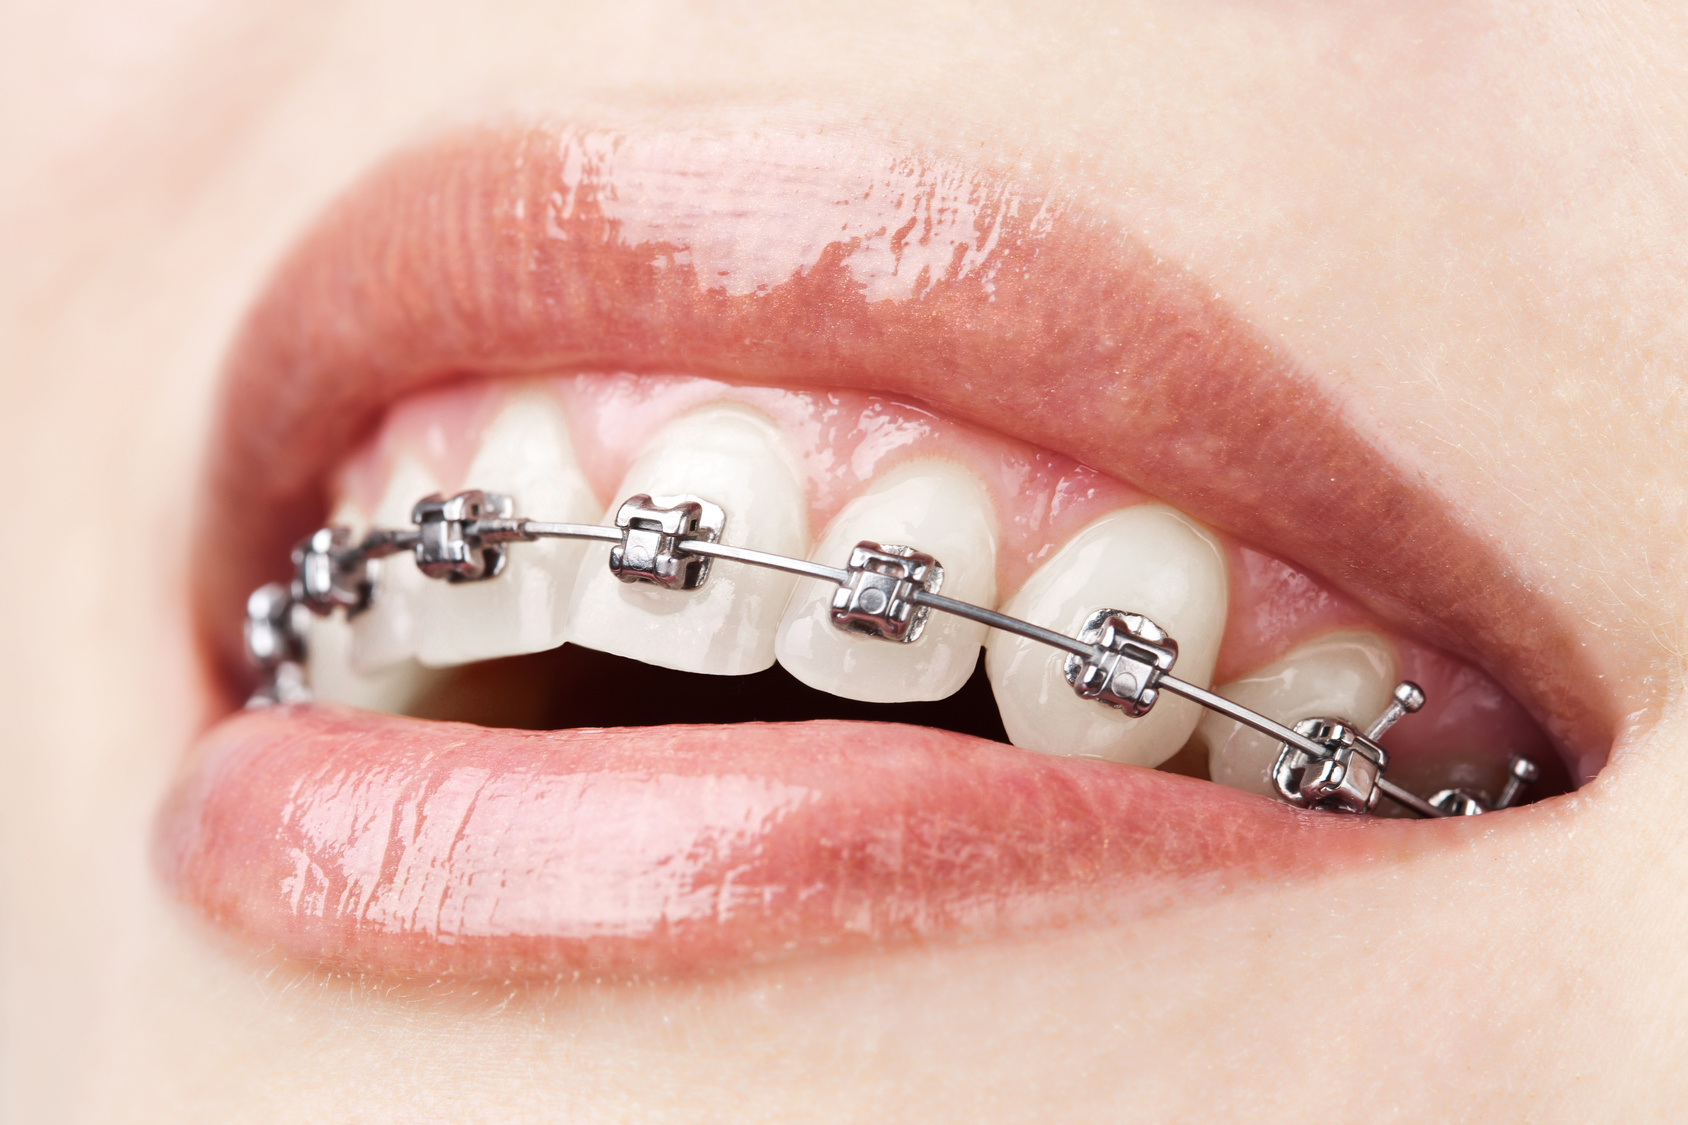 Suresmile Orthodontic & Multi-Speciality Dental Clinic